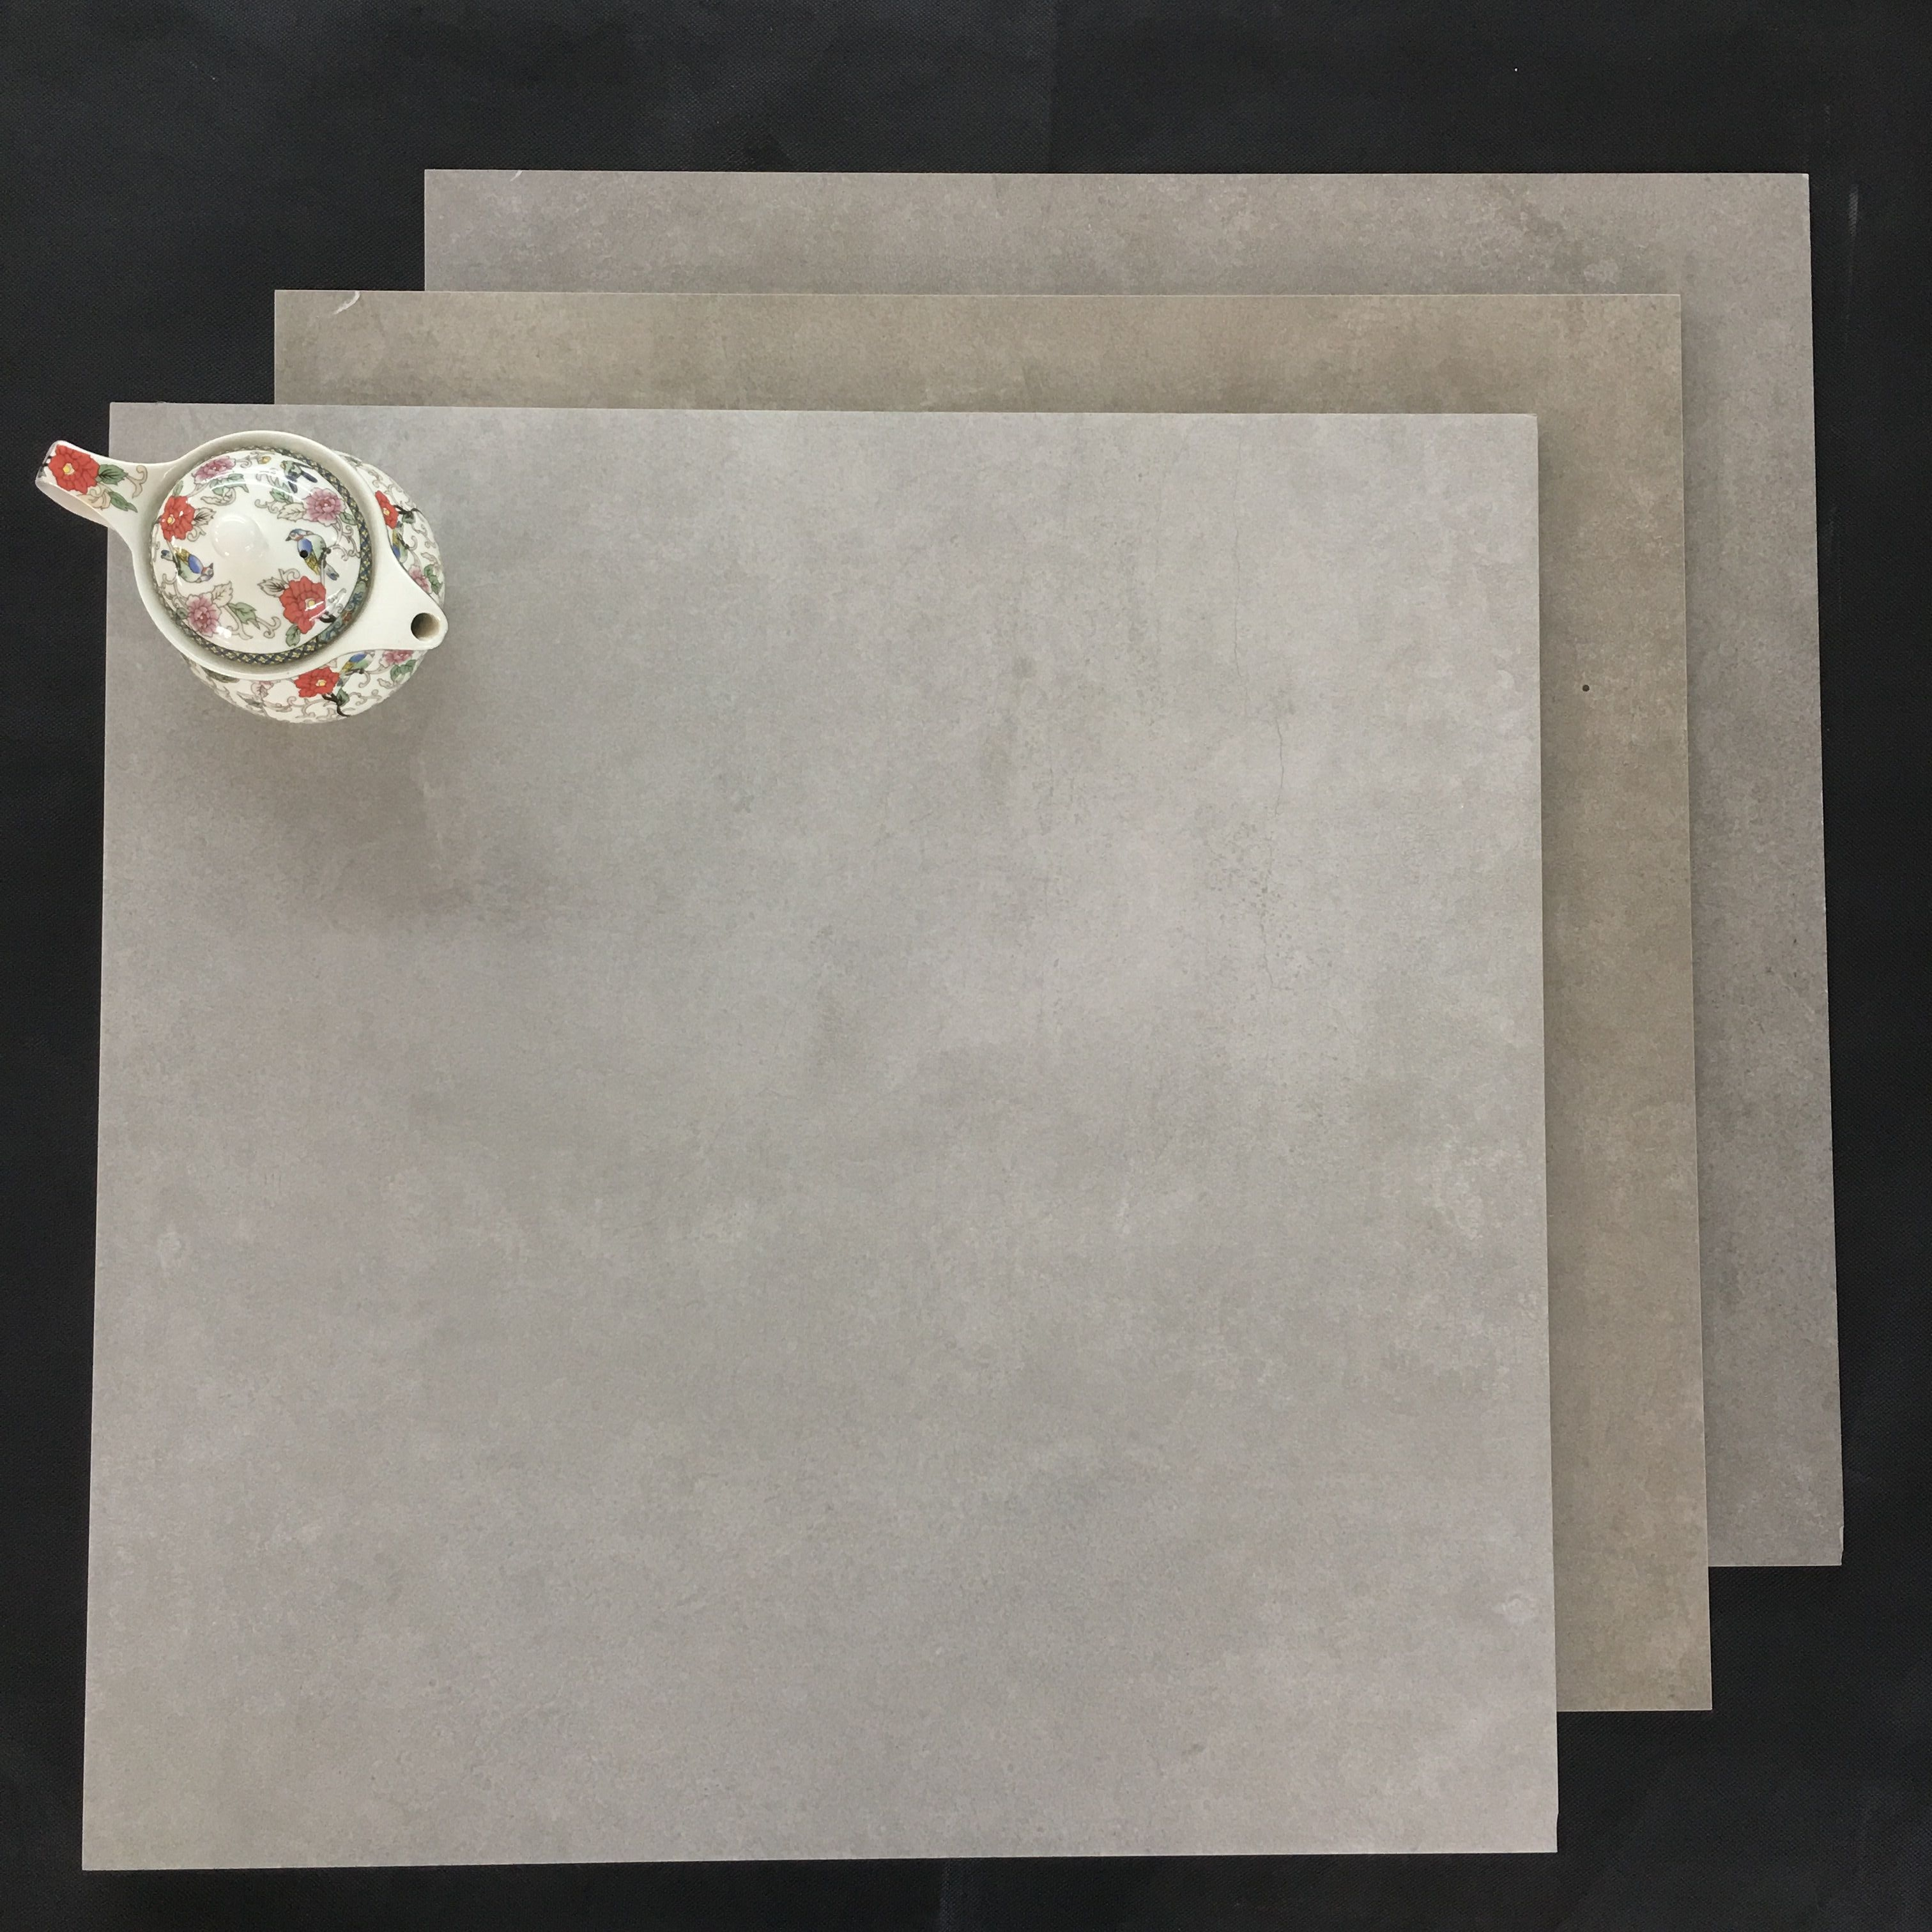 Cheapest <strong>Ceramic</strong> with Price Grey Porcelain Bathroom Wall Tile Rustic Floor Tile 600x600mm